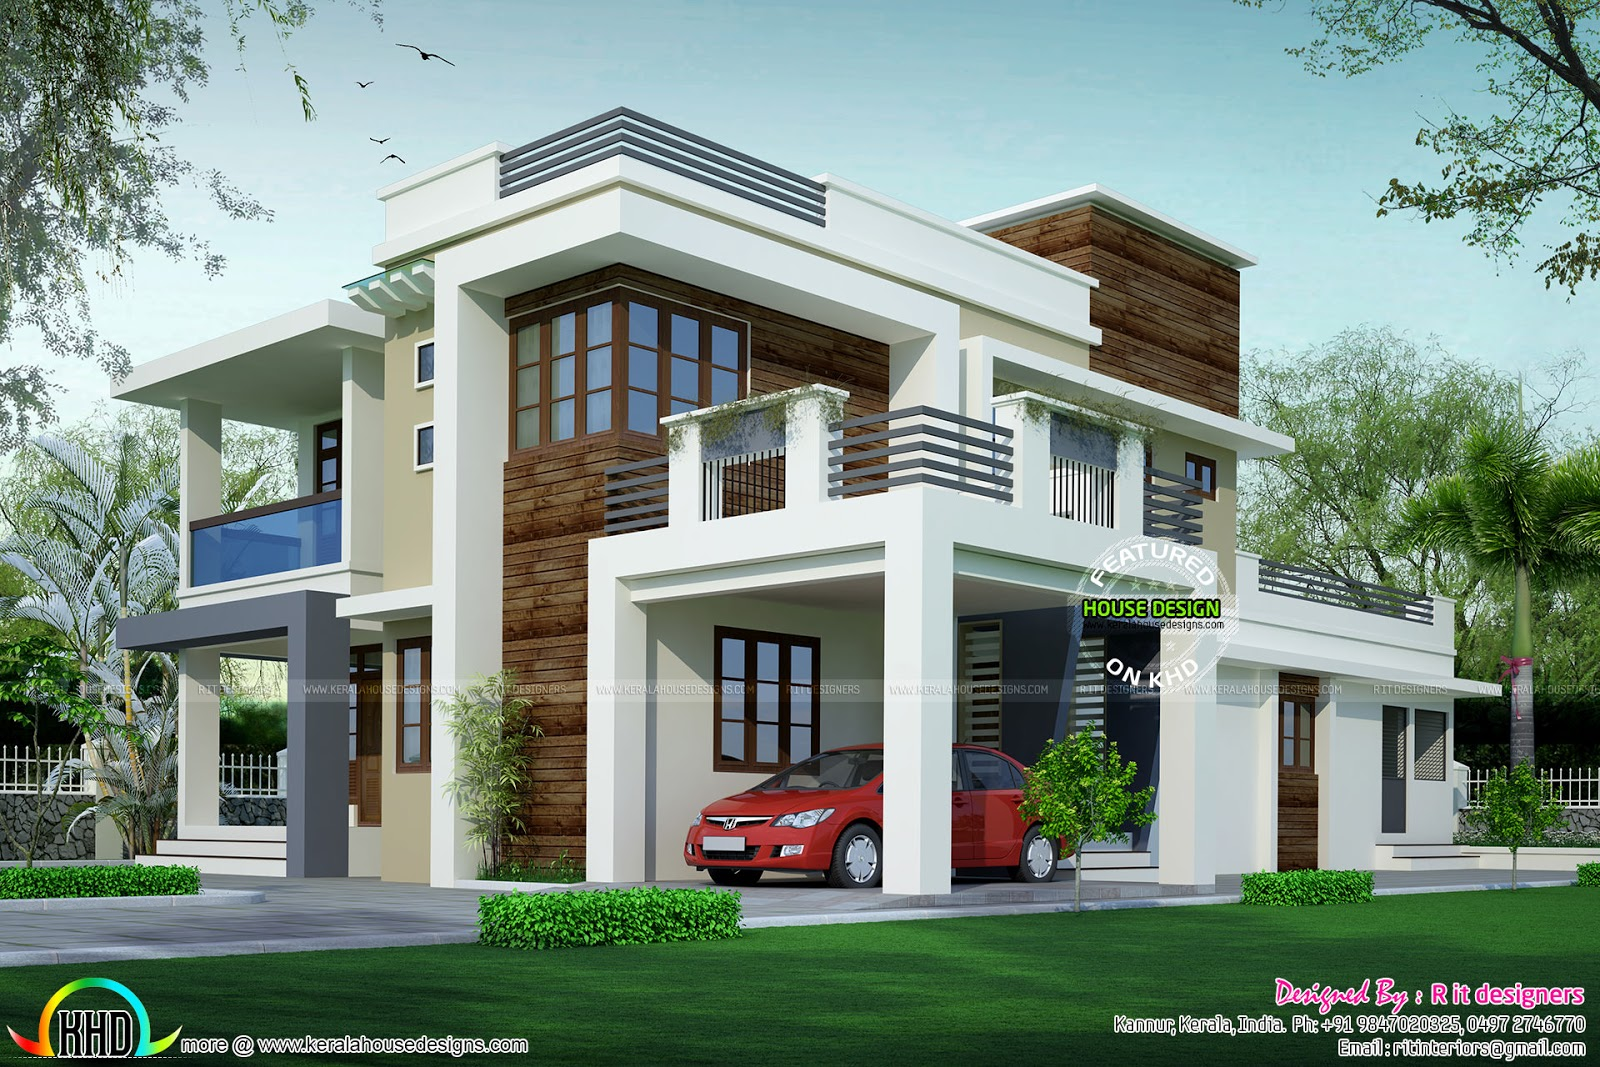 House design contemporary model kerala home design and Contemporary home designs and floor plans